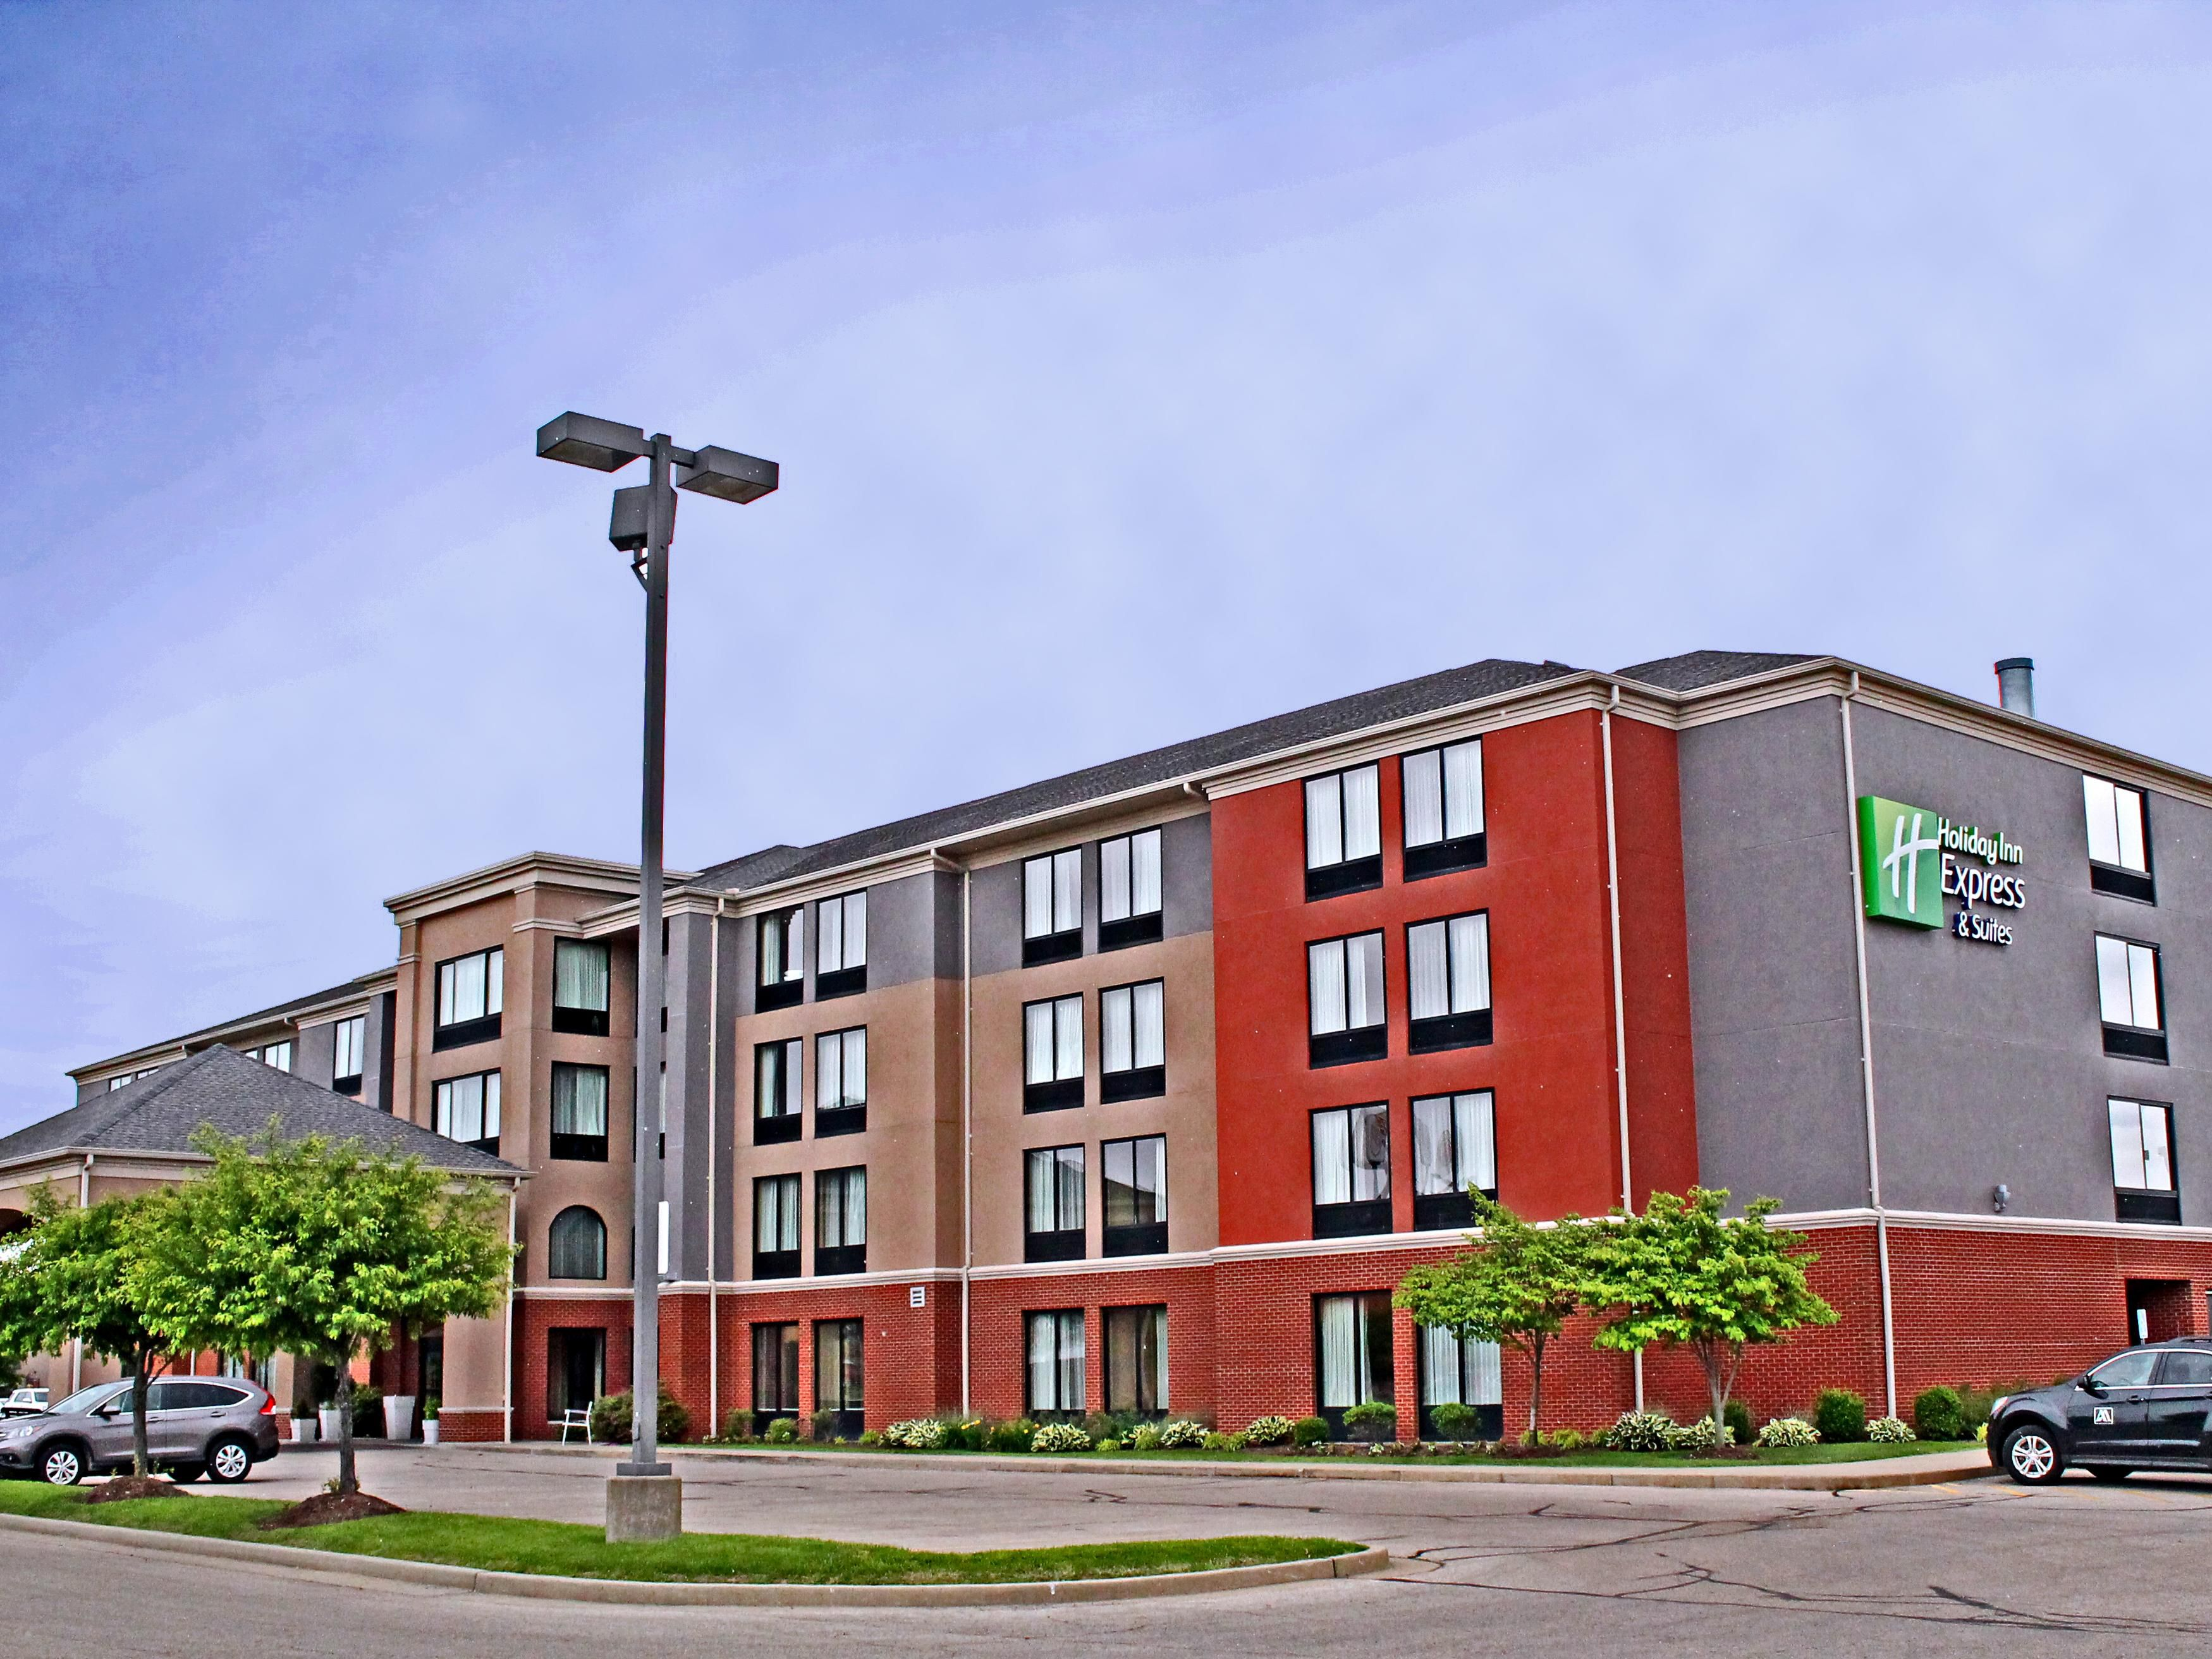 Welcome to the Holiday Inn & Suites Cape Girardeau!